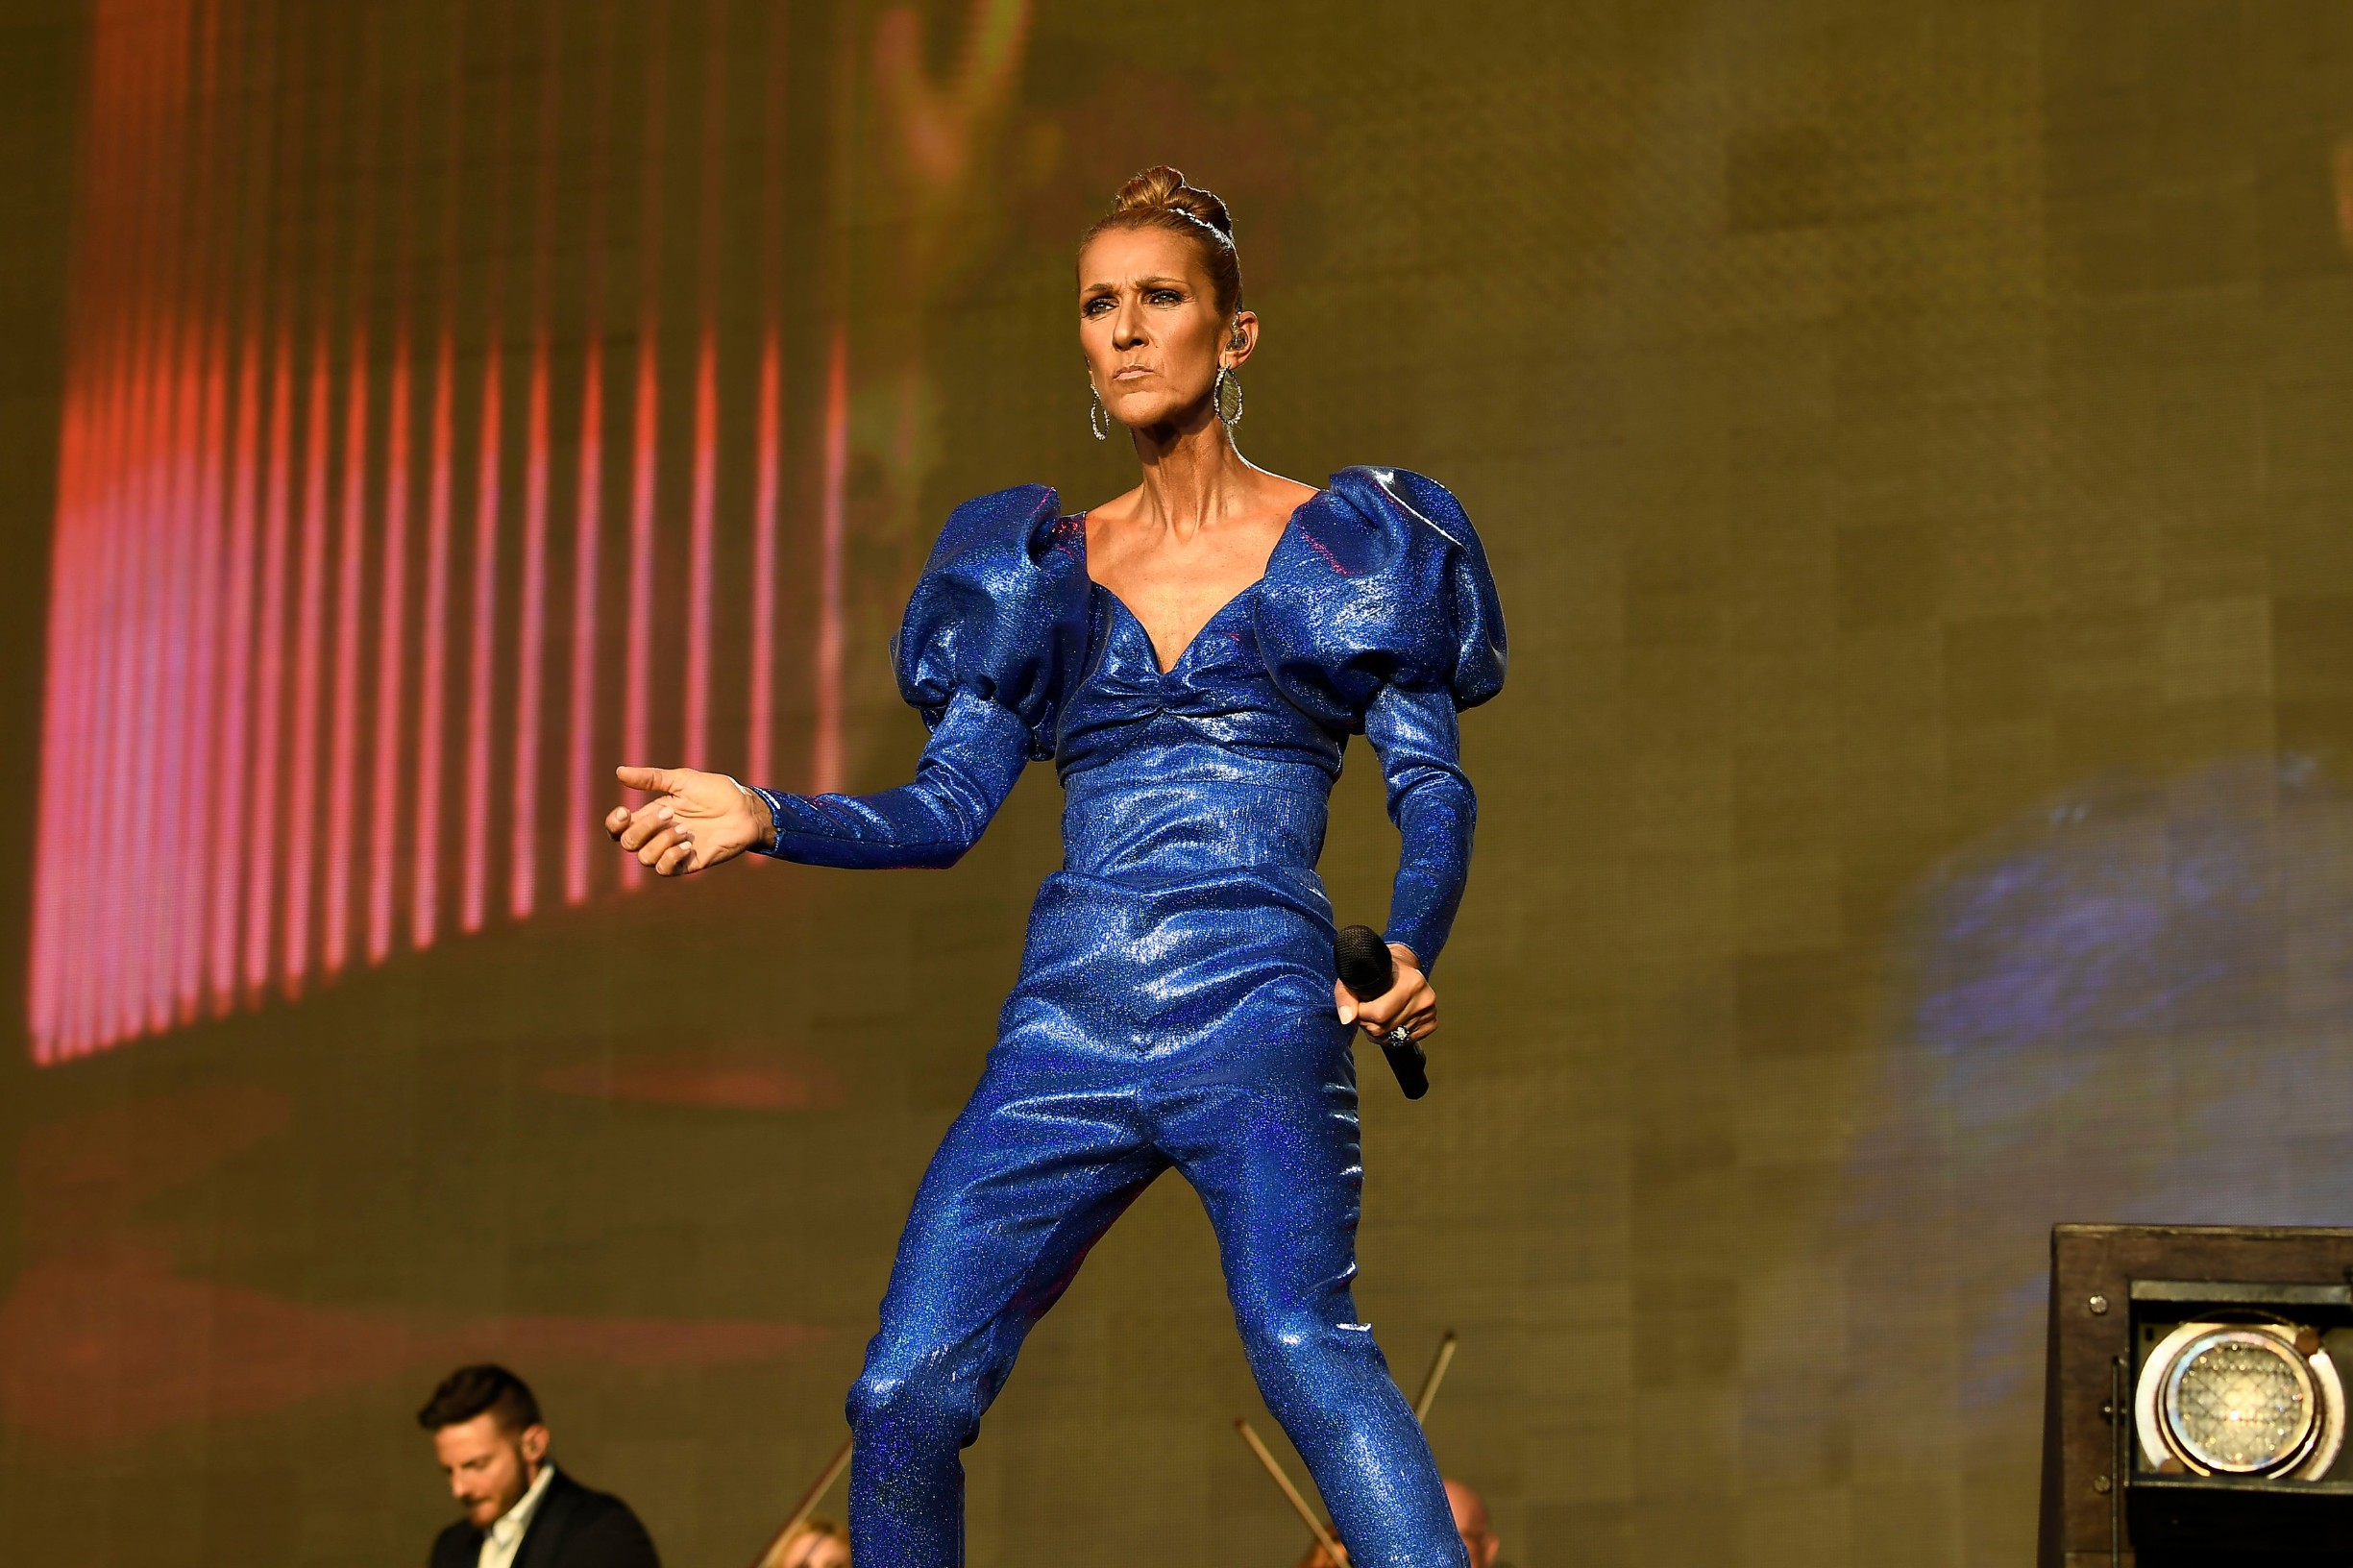 LONDON, ENGLAND - JULY 5: Celine Dion performing at British Summertime, Hyde Park on July 5, 2019 in London, England., Image: 454944889, License: Rights-managed, Restrictions: , Model Release: no, Credit line: Martin Harris / Capital pictures / Profimedia